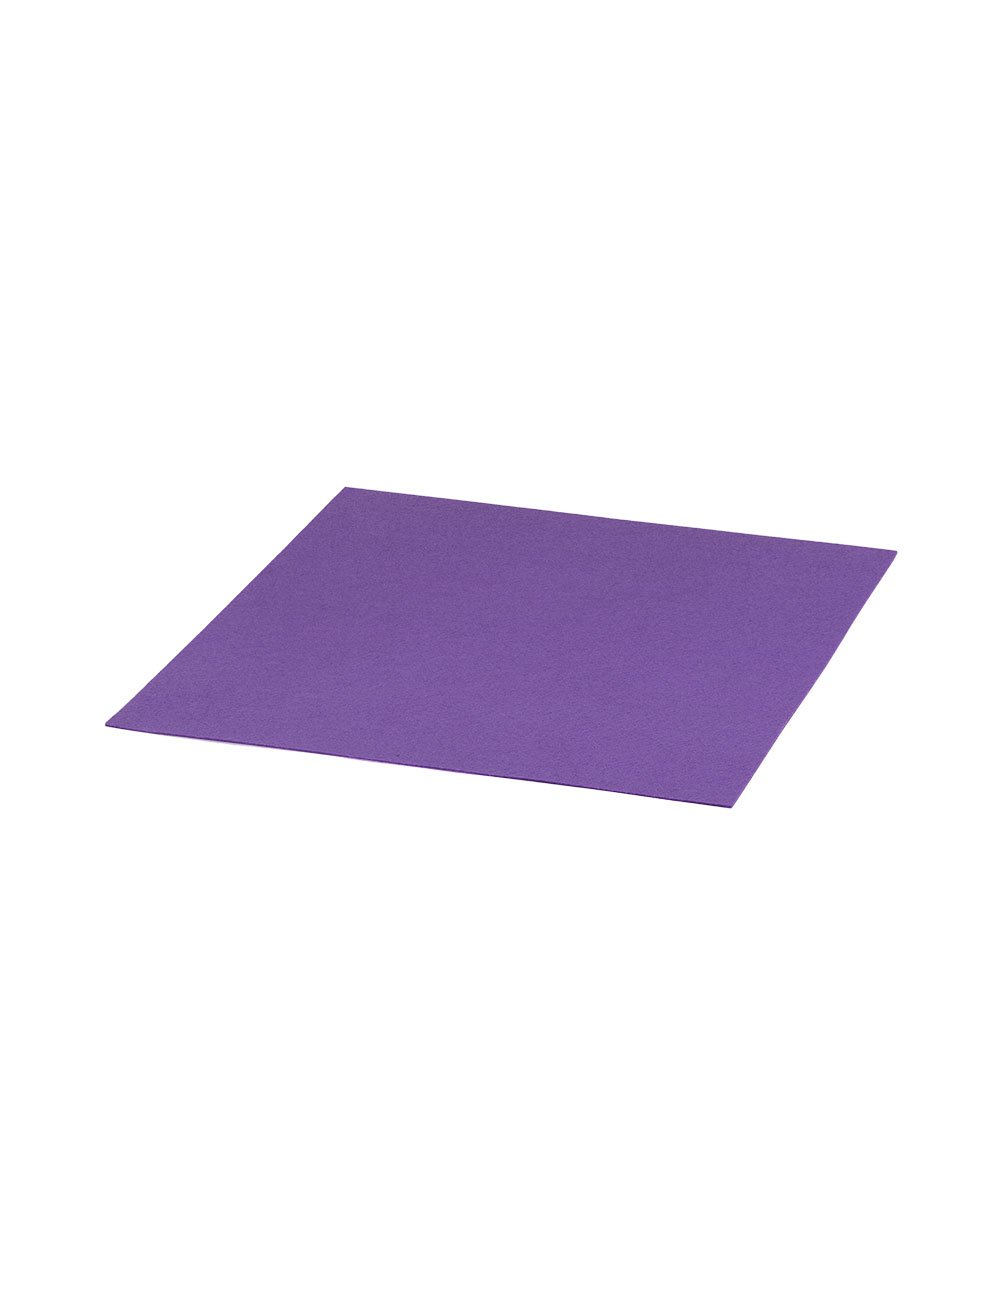 12' X 12' Stiff Felt - Lavender, 1 Pc The Felt Store